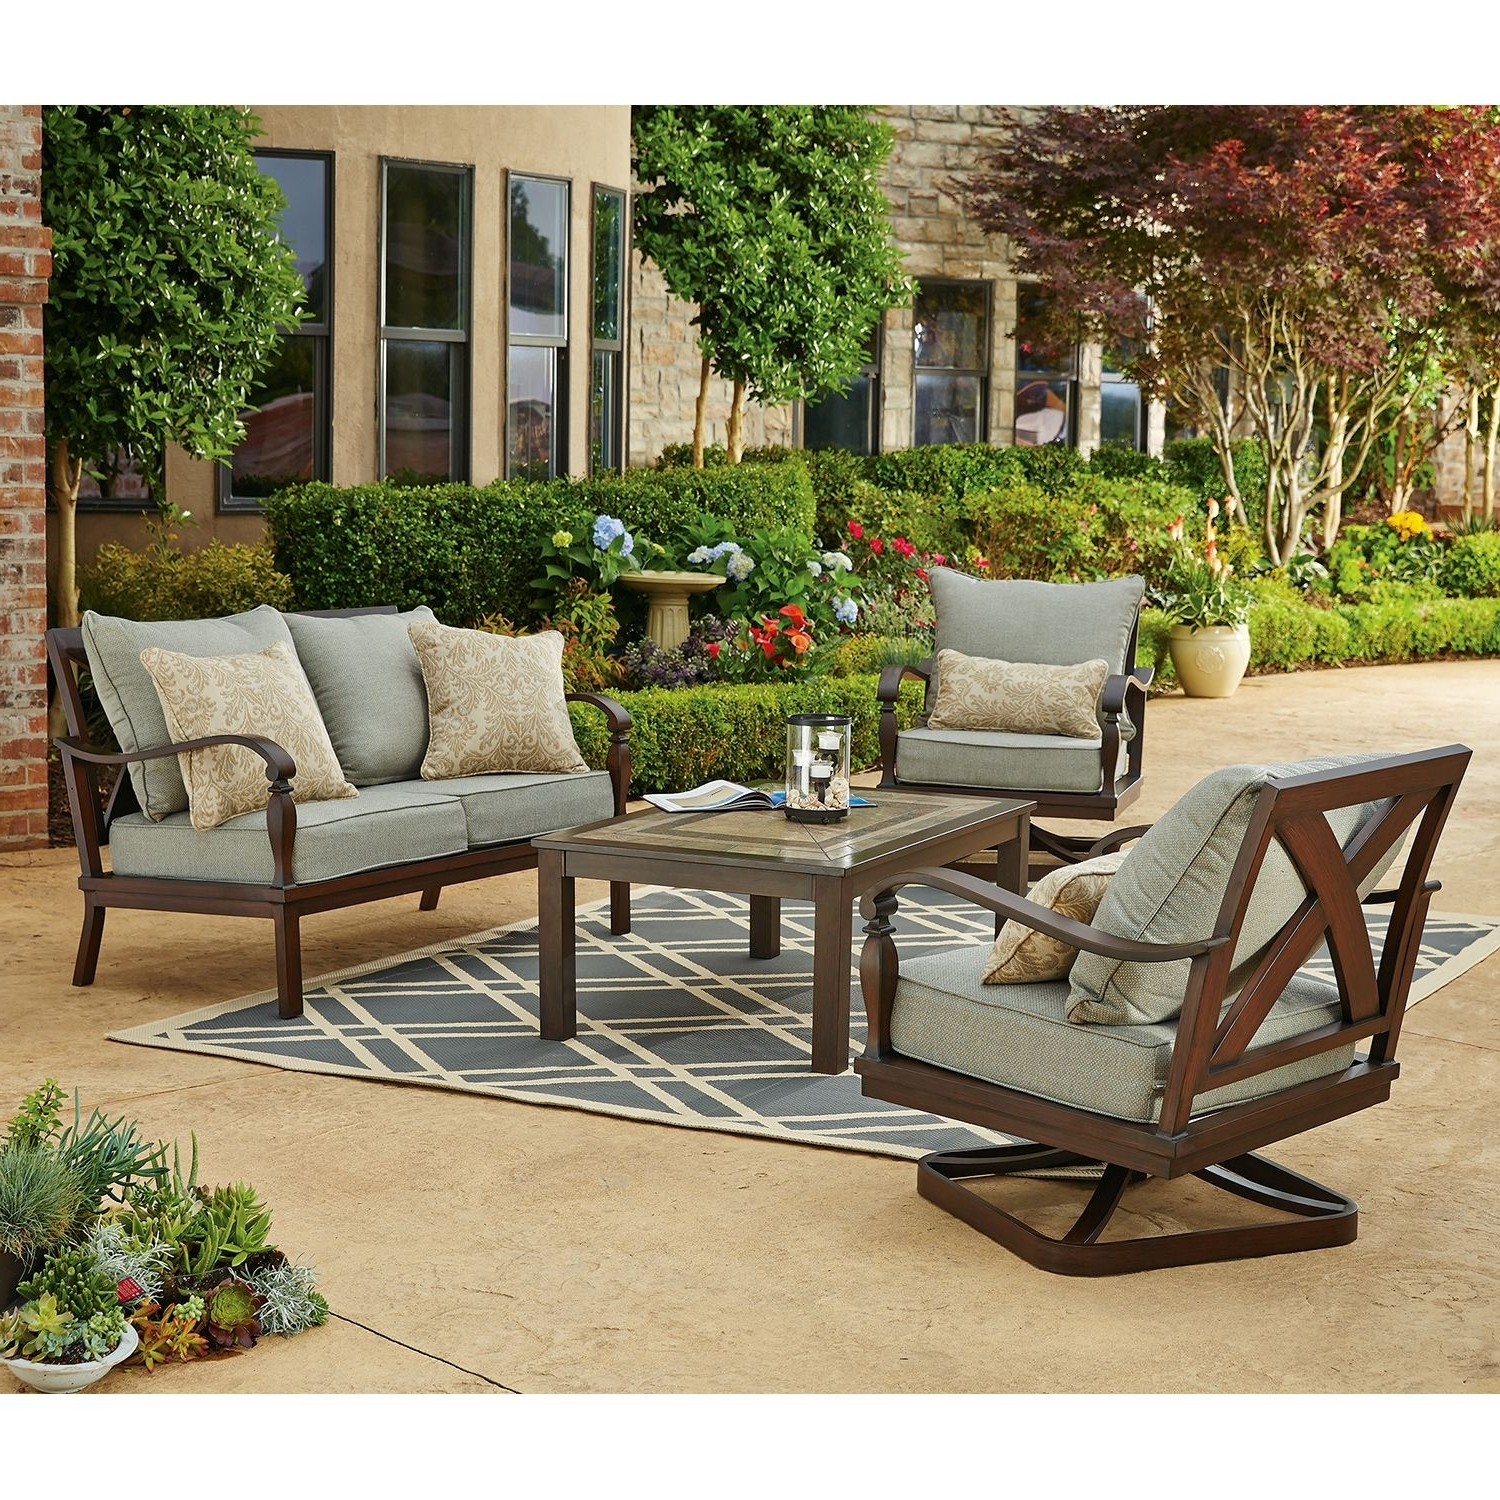 Iron Patio Conversation Sets With Regard To Most Recently Released Furniture: Cozy Wrought Iron Patio Chairs With Cushions And Gray (View 14 of 15)